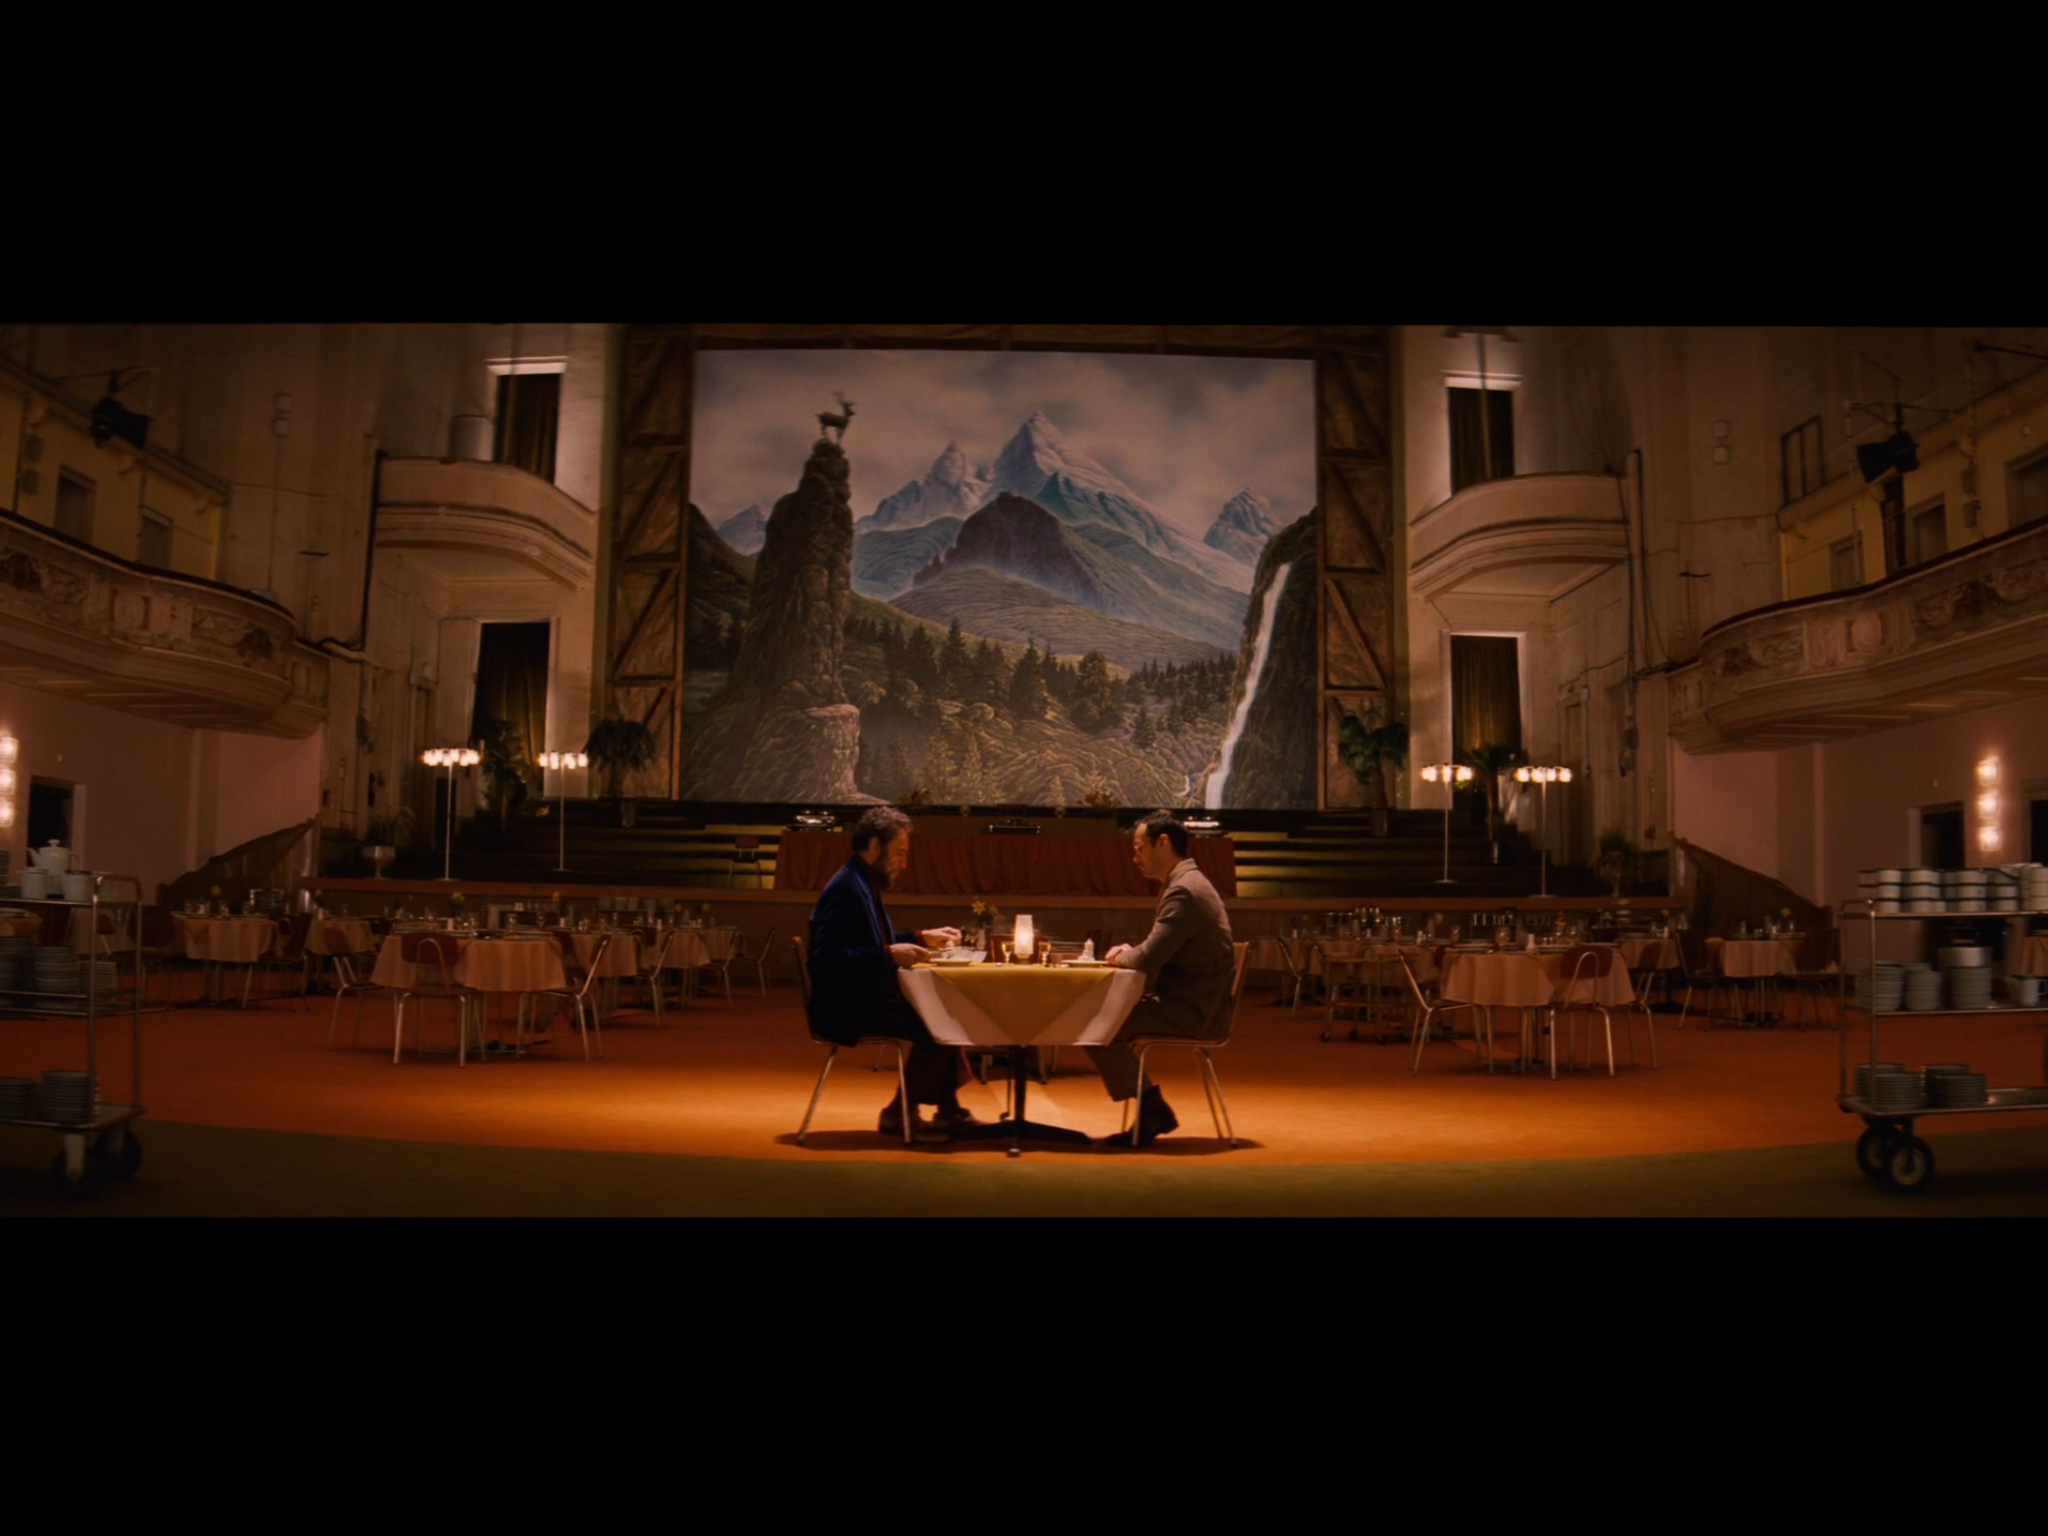 Screenshot from the movie featuring Zero and the Author during their private dinner at the hotel - filmed at the Stadhalle. The giant artwork on the stage behind them is by artist Michael Lenz, in the style of 19th Century landscape artist Caspar David Friedrich.